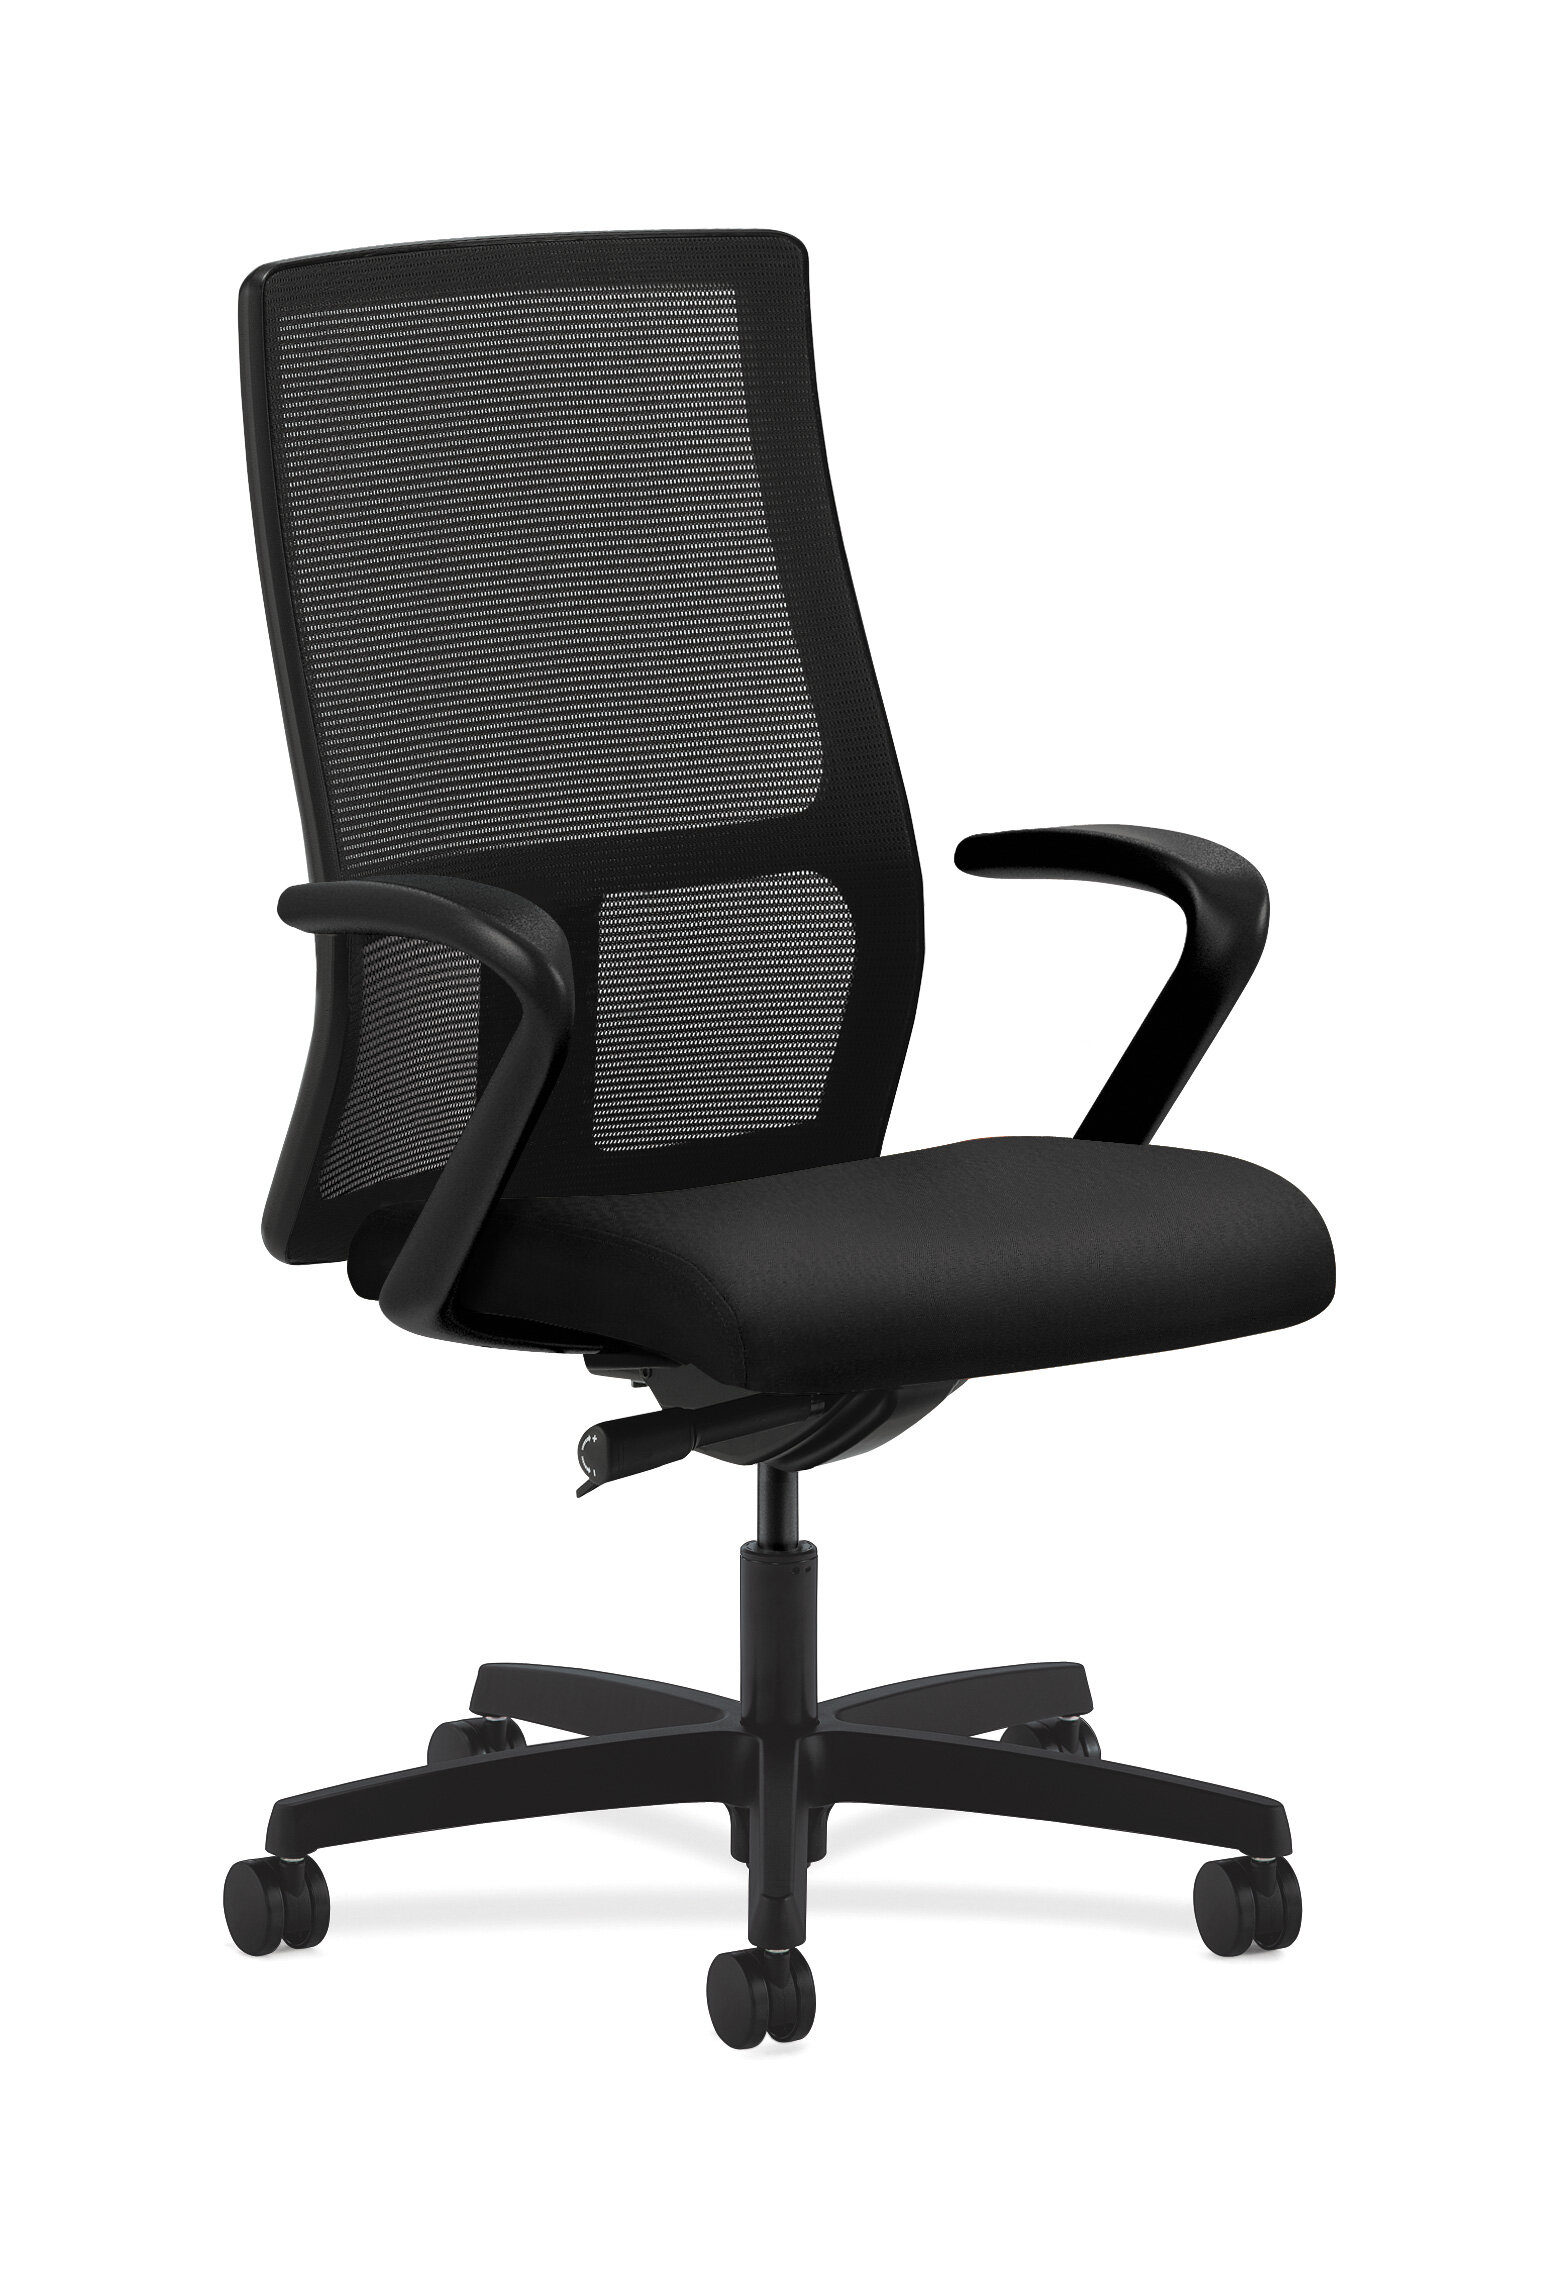 Beau HON Ignition Mesh Desk Chair U0026 Reviews | Wayfair